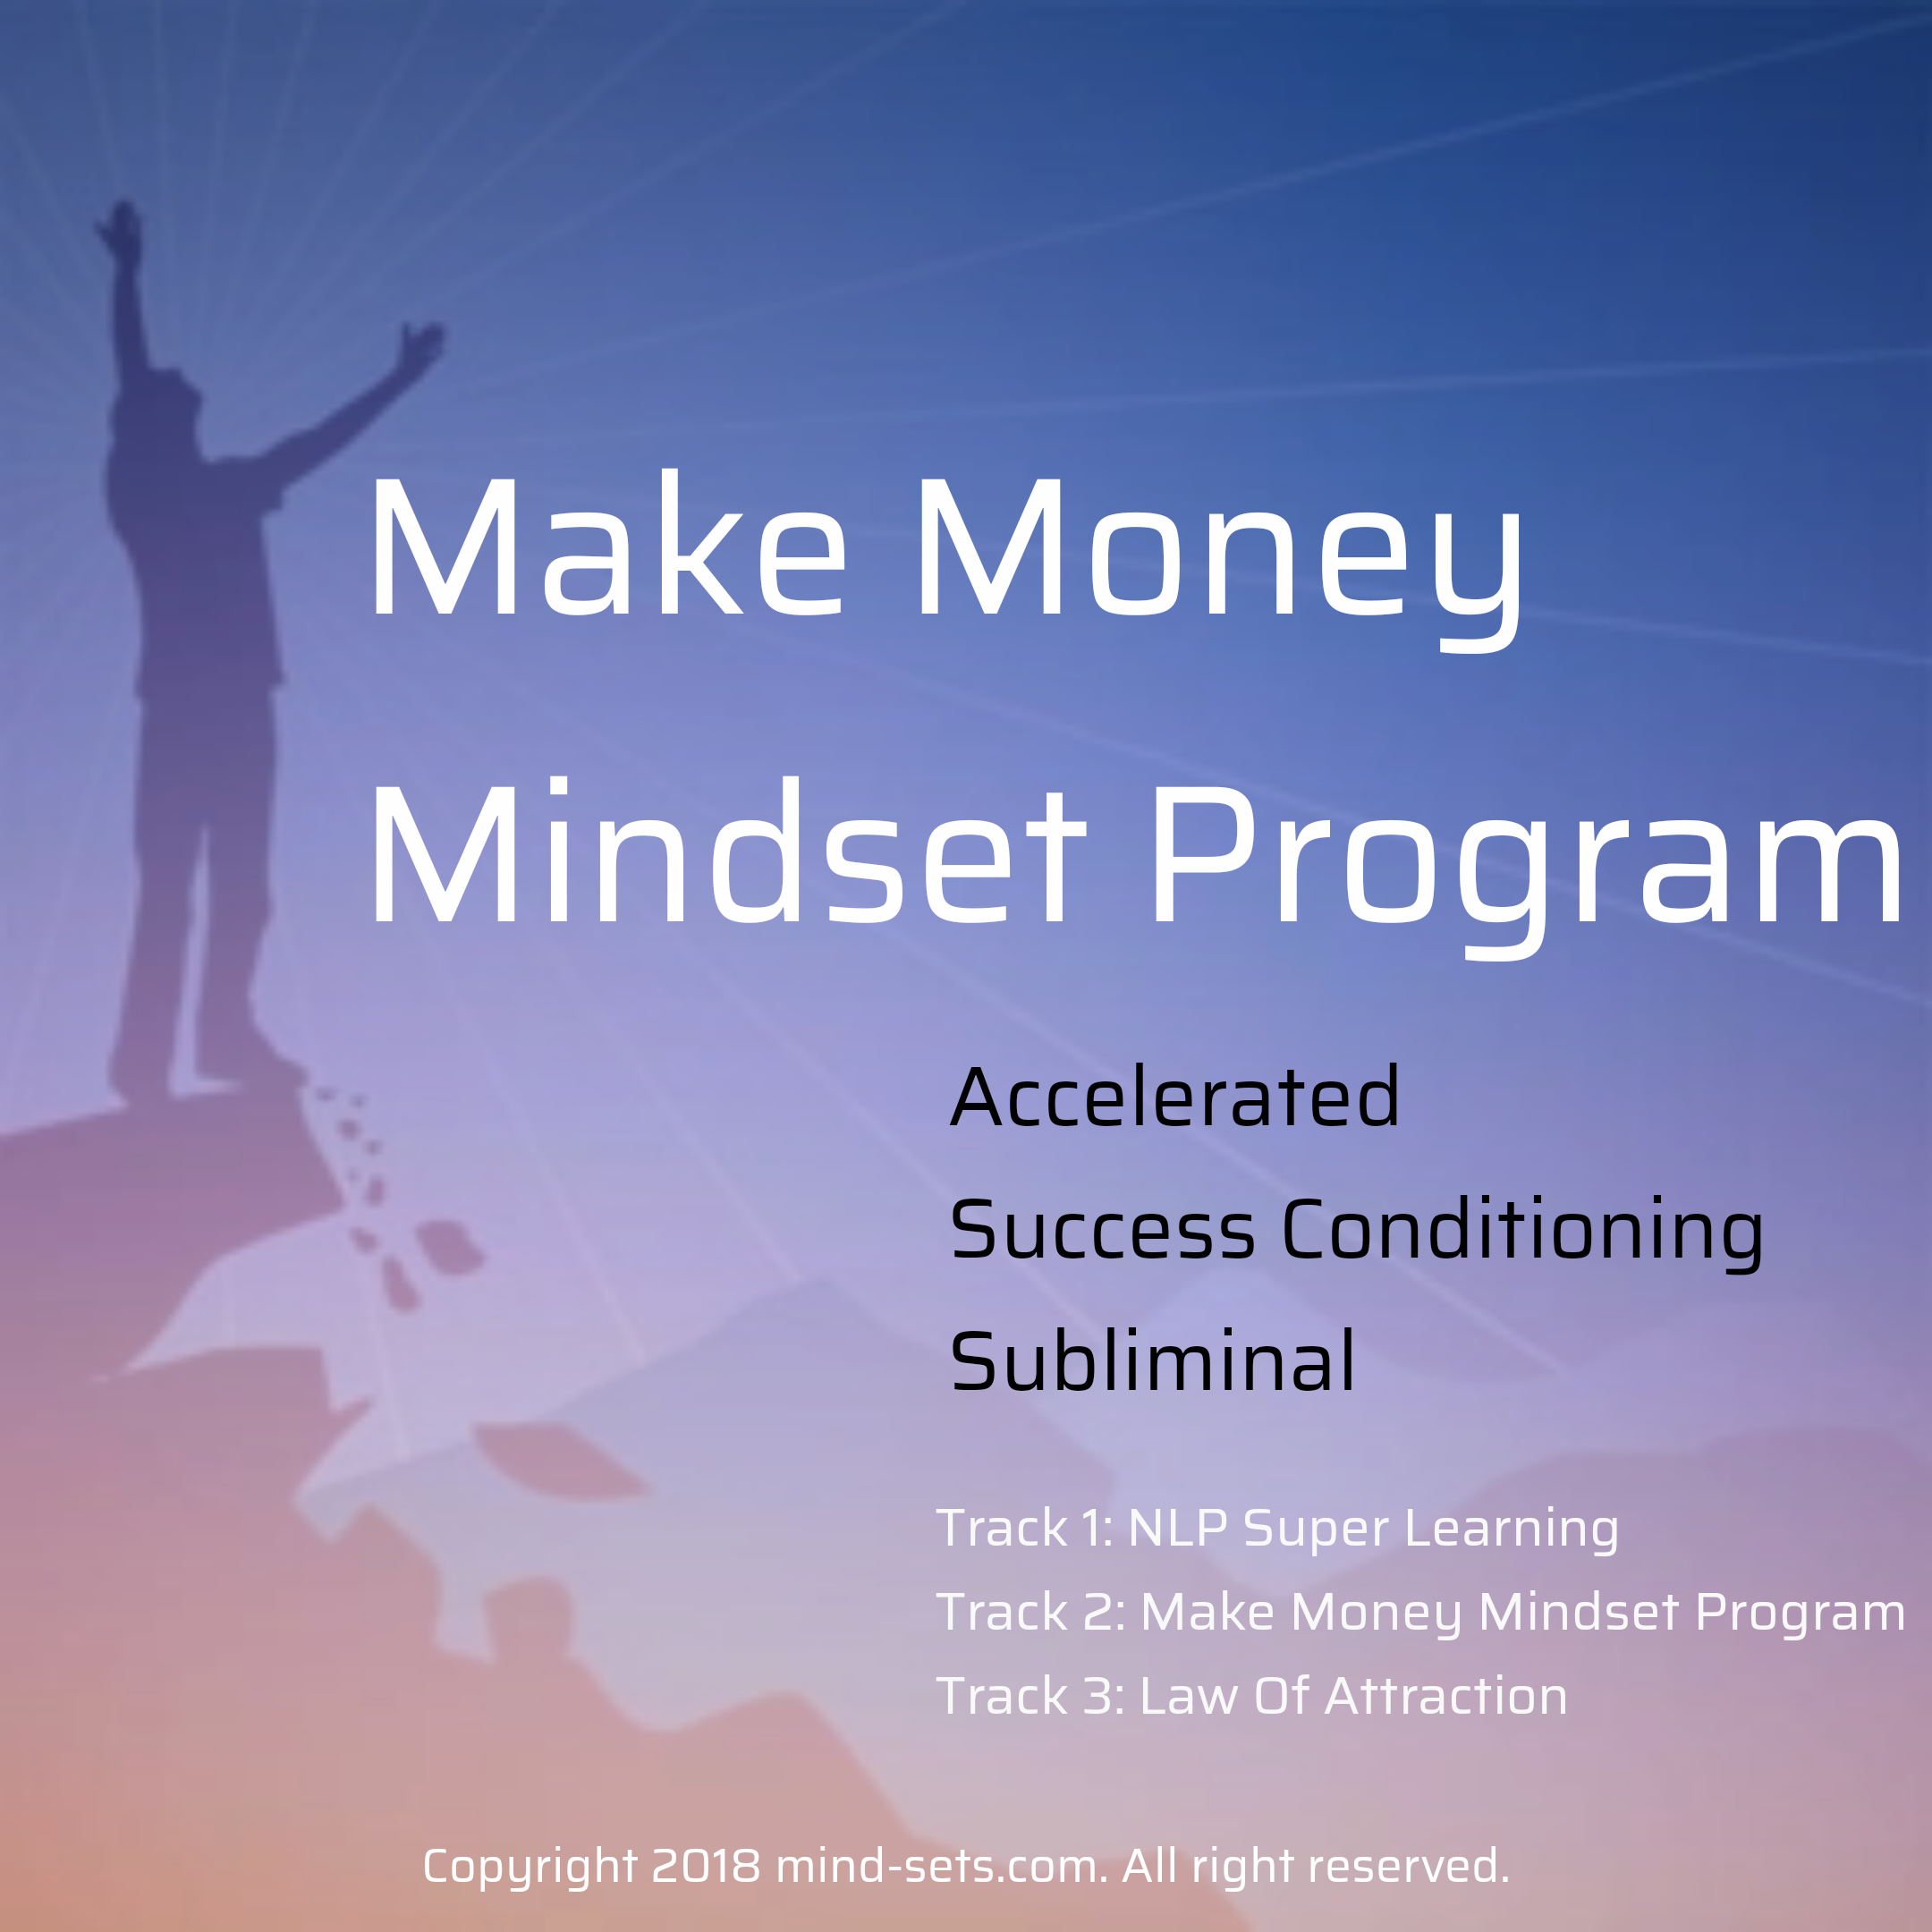 Make Money Mindset Program